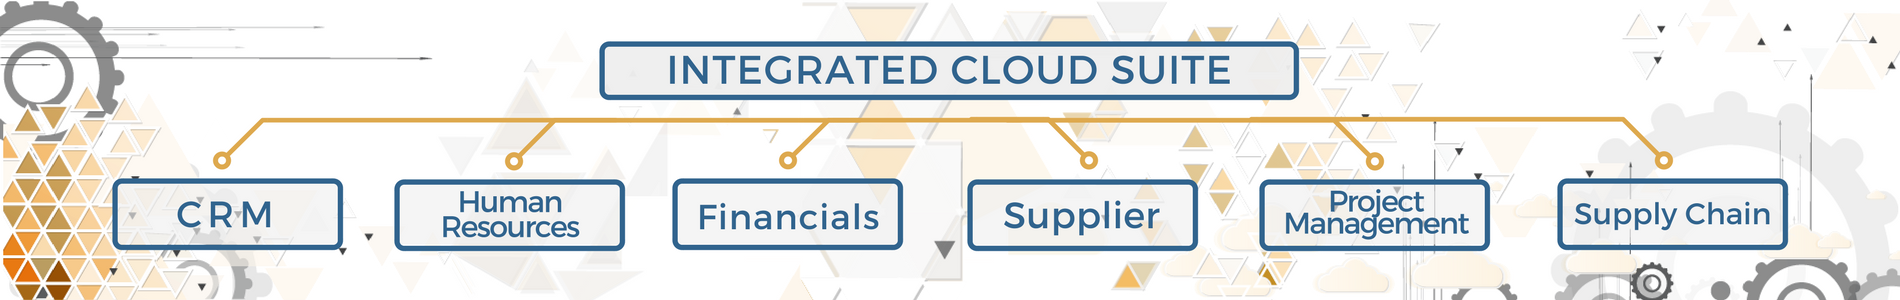 integrated_cloud_hero_image.png